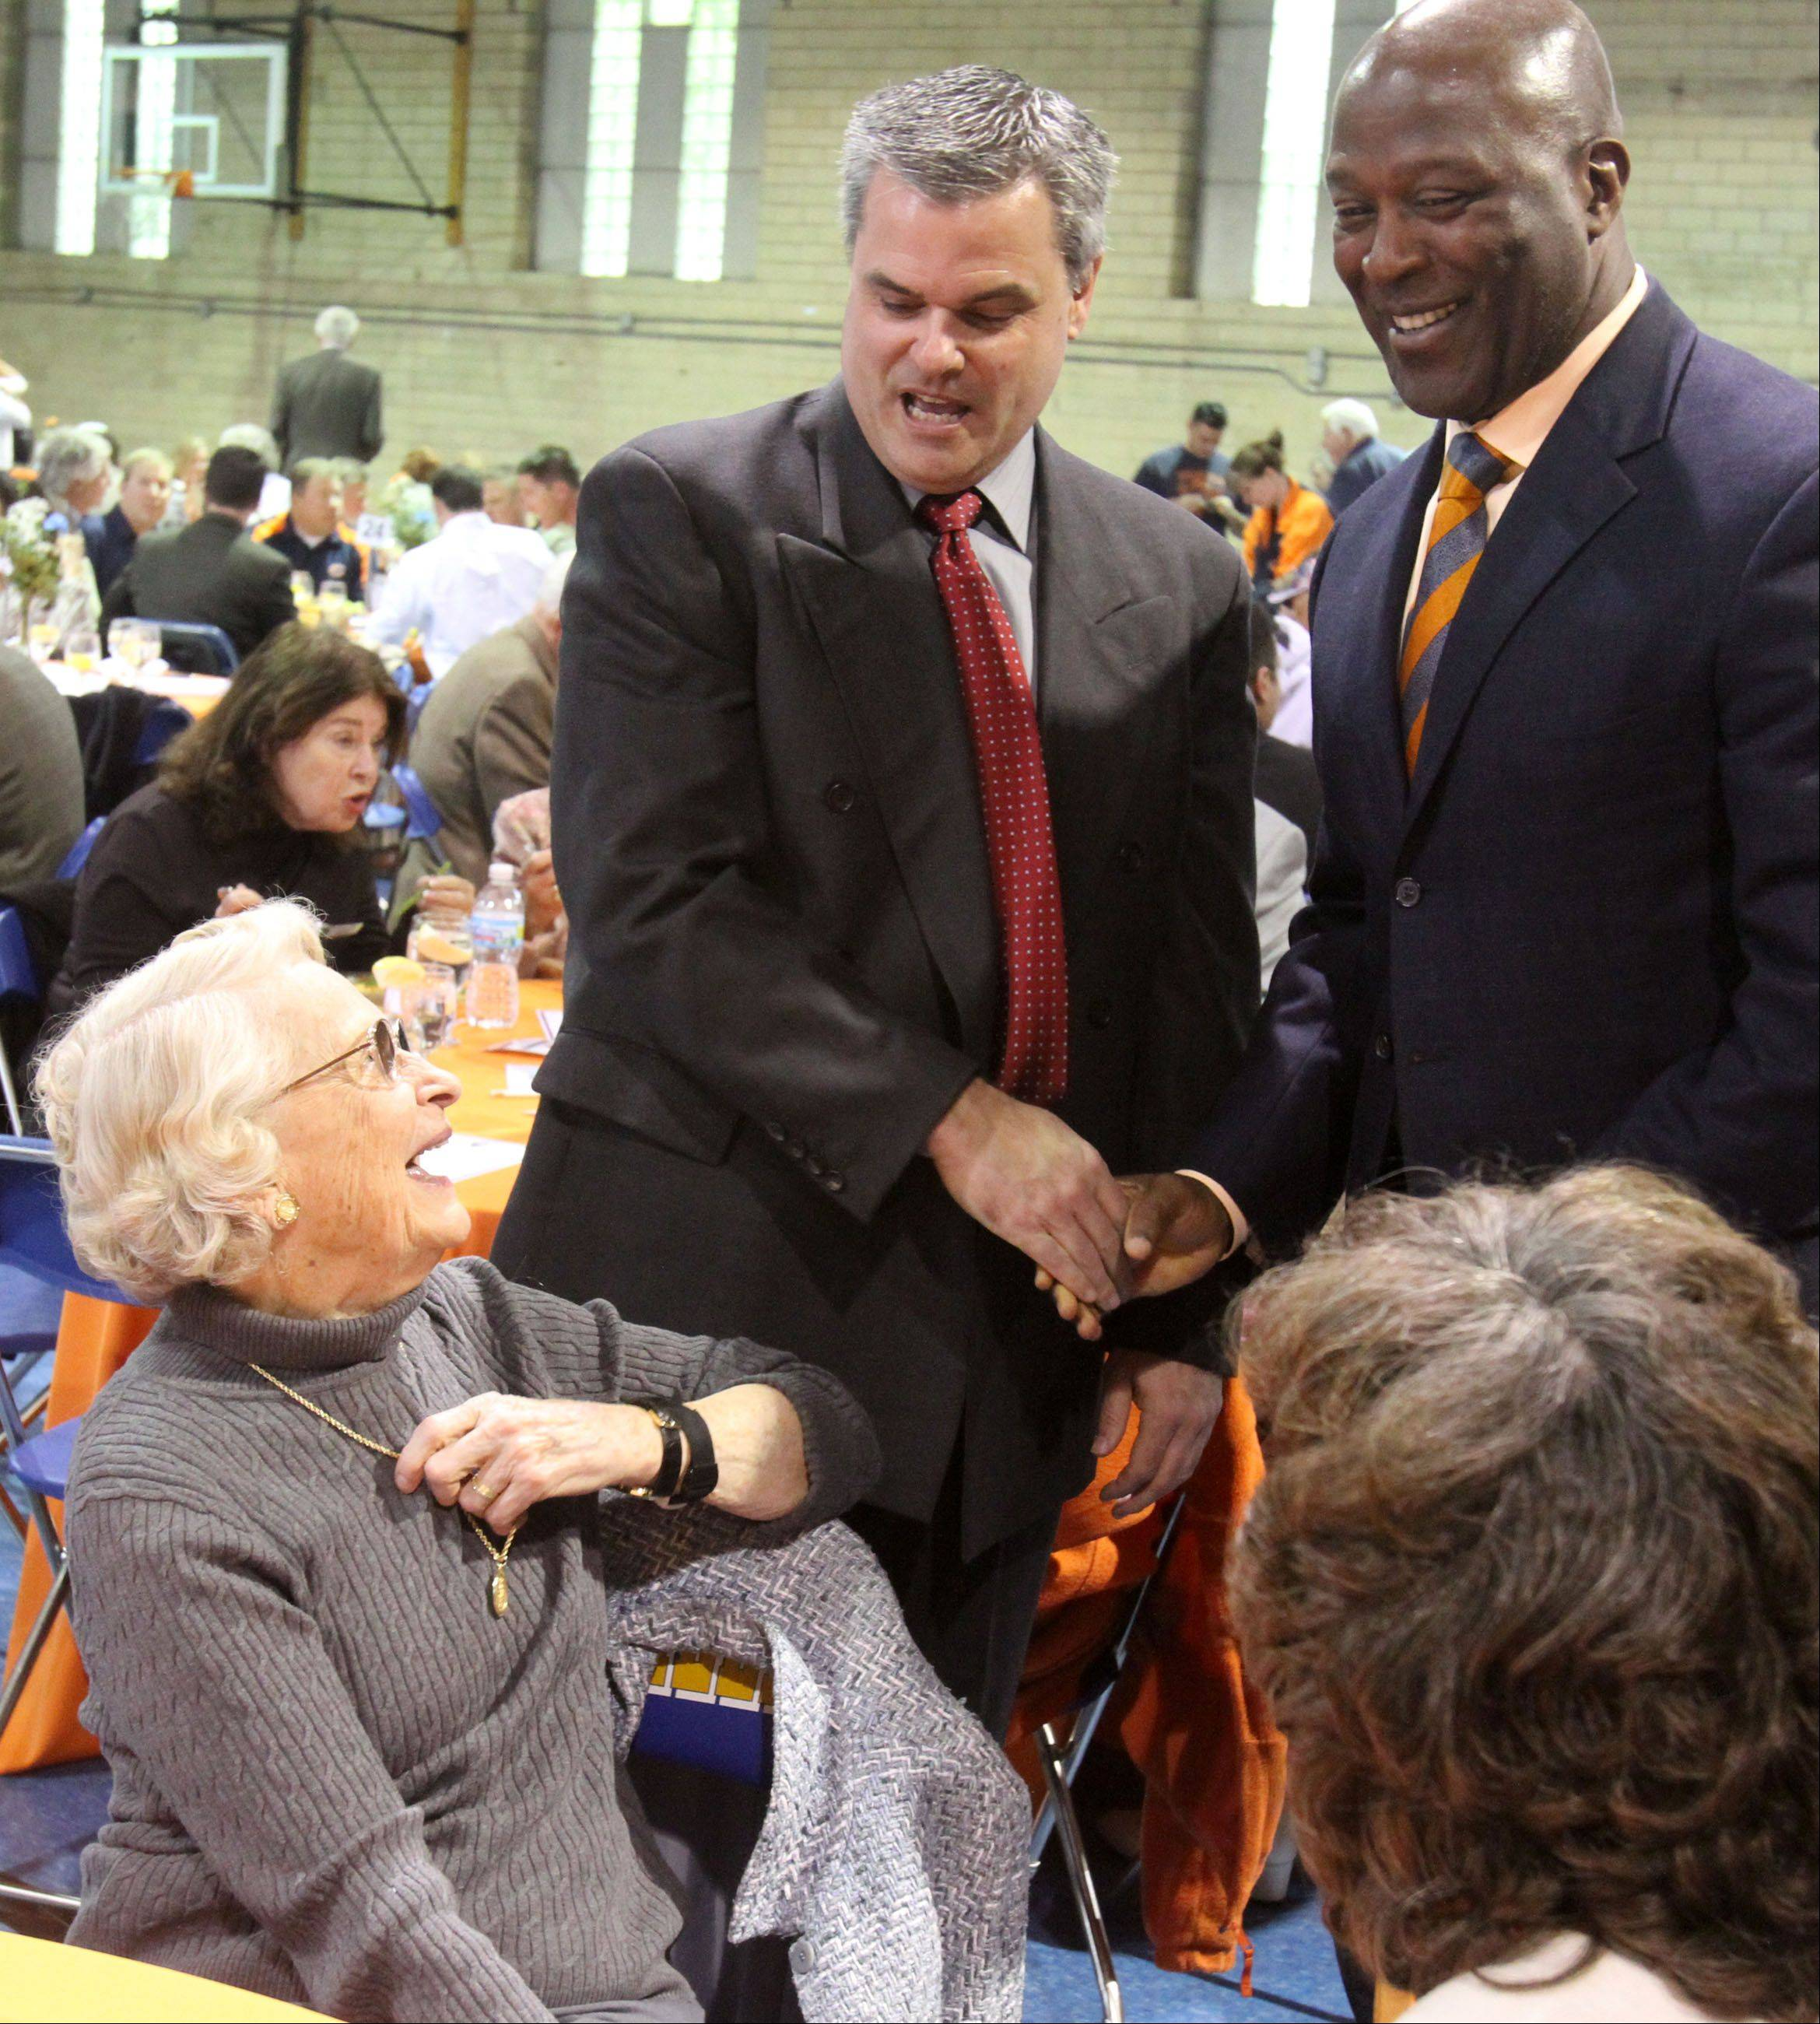 Virginia Halas McCaskey has a laugh with Des Plaines Police Chief Mike Kozak, left, and Bears Coach Lovie Smith at the Ed McCaskey Scholarship luncheon April 10.